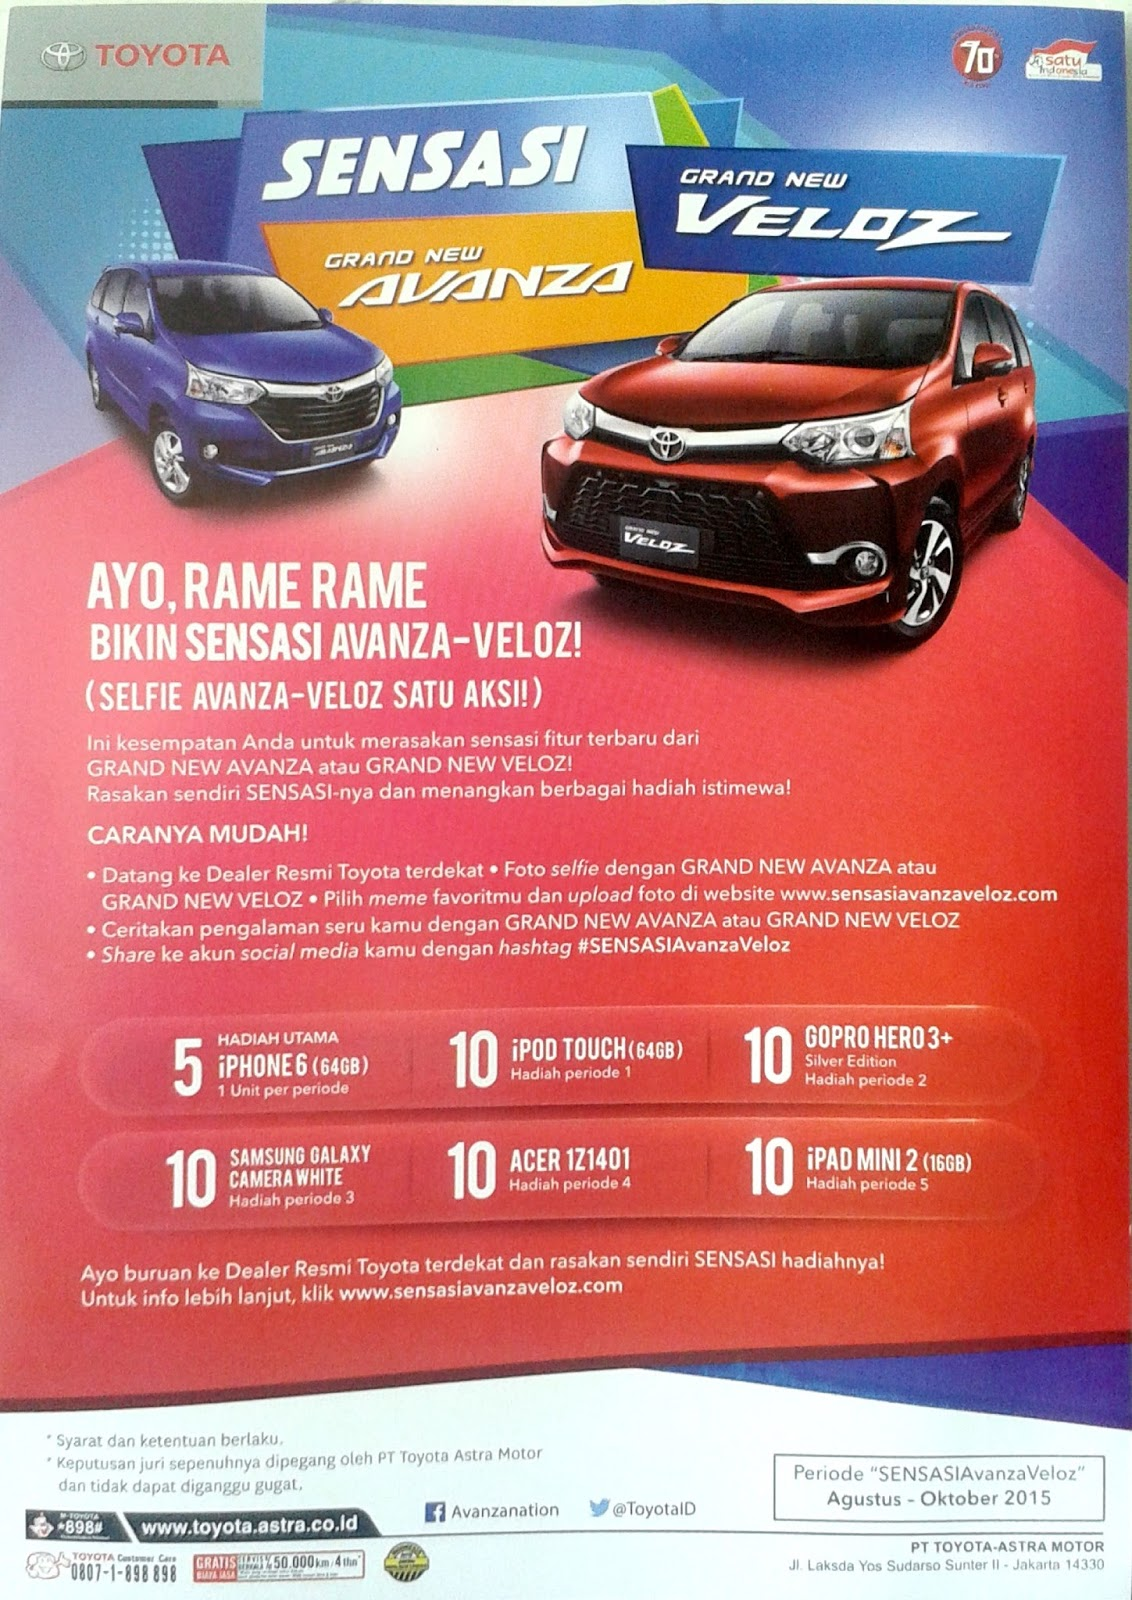 double din grand new veloz agya 1.2 a/t trd sensasi avanza and harga toyota auto 2000